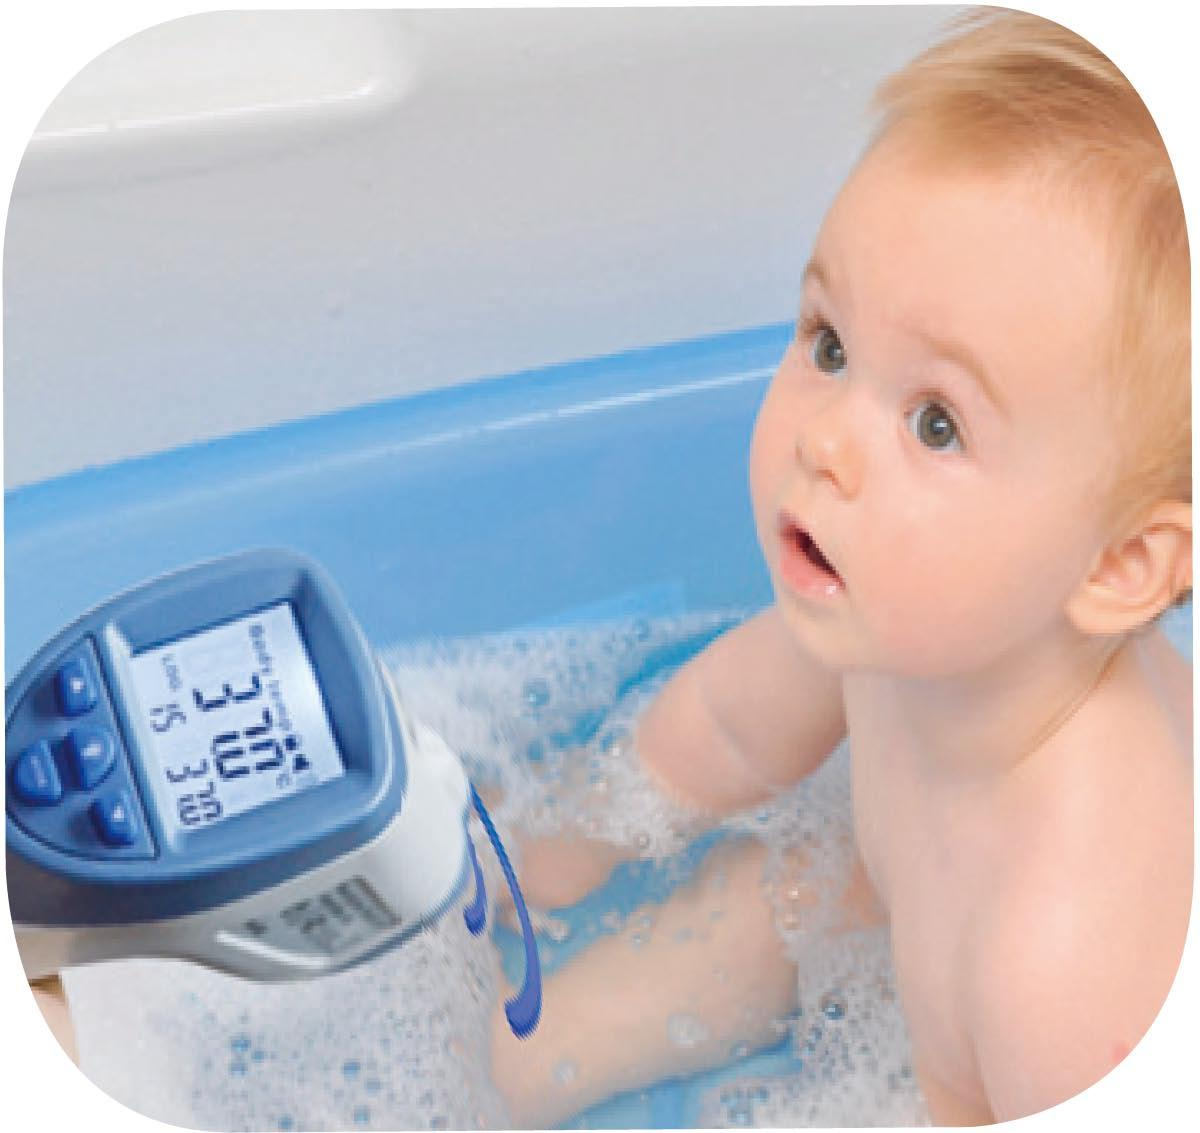 Amazon.com: Digital Forehead Inrared Thermometer - No Touch Quick ...